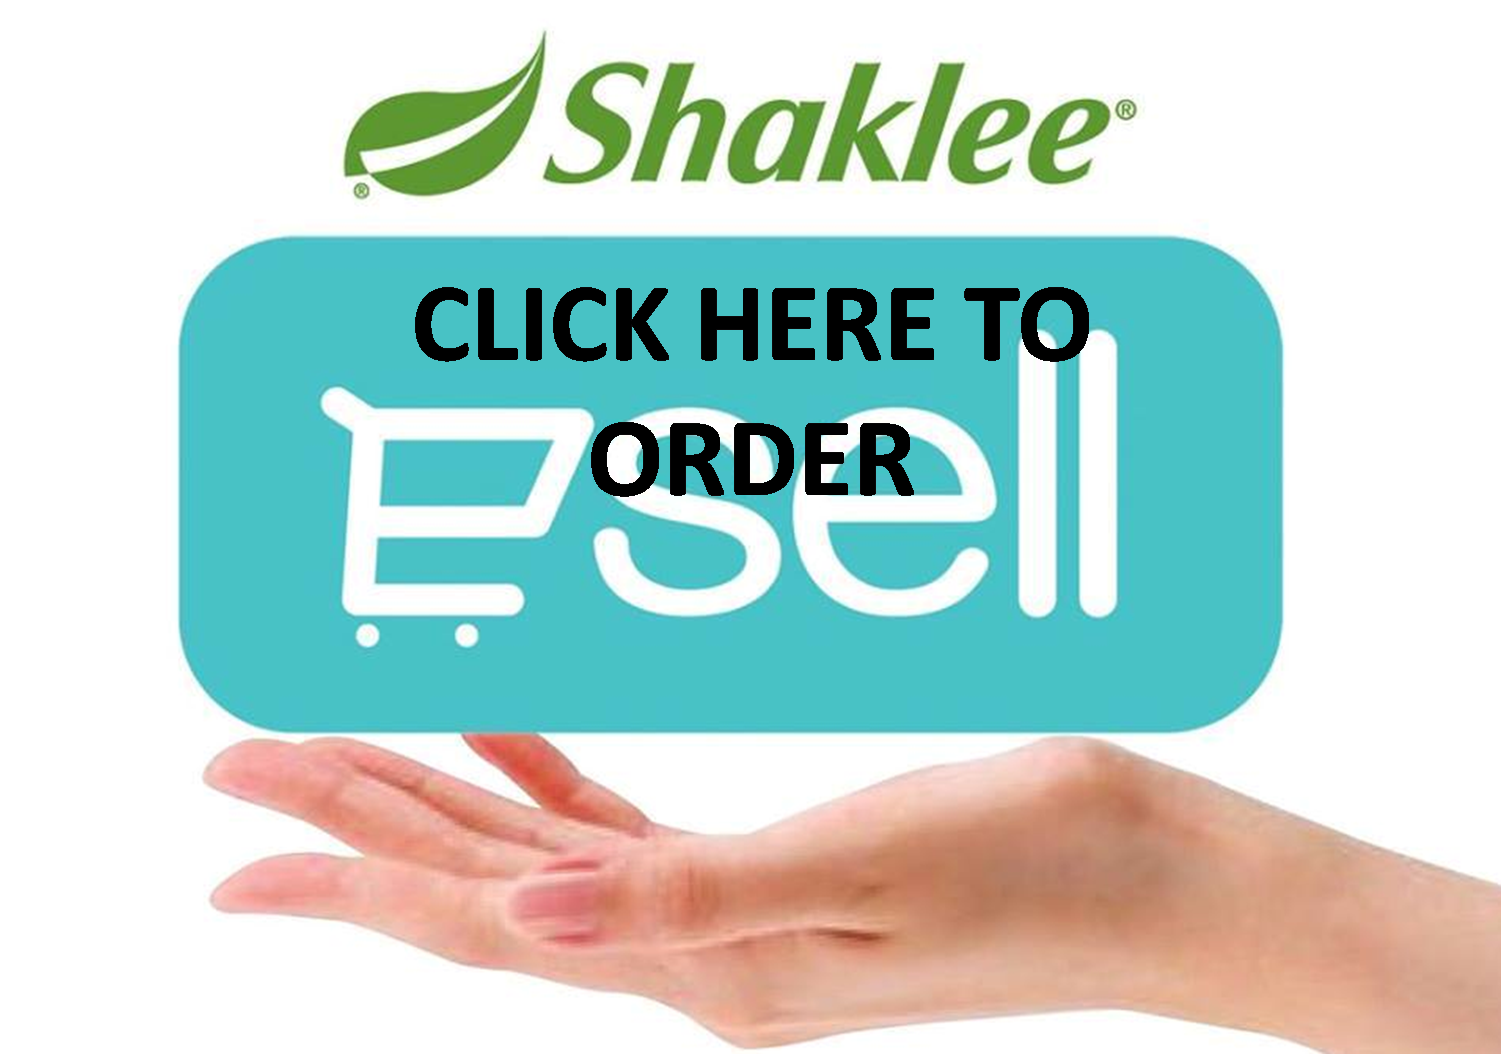 https://www.shaklee2u.com.my/widget/widget_agreement.php?session_id=&enc_widget_id=073c83fb6a5532256c1f33f207330684